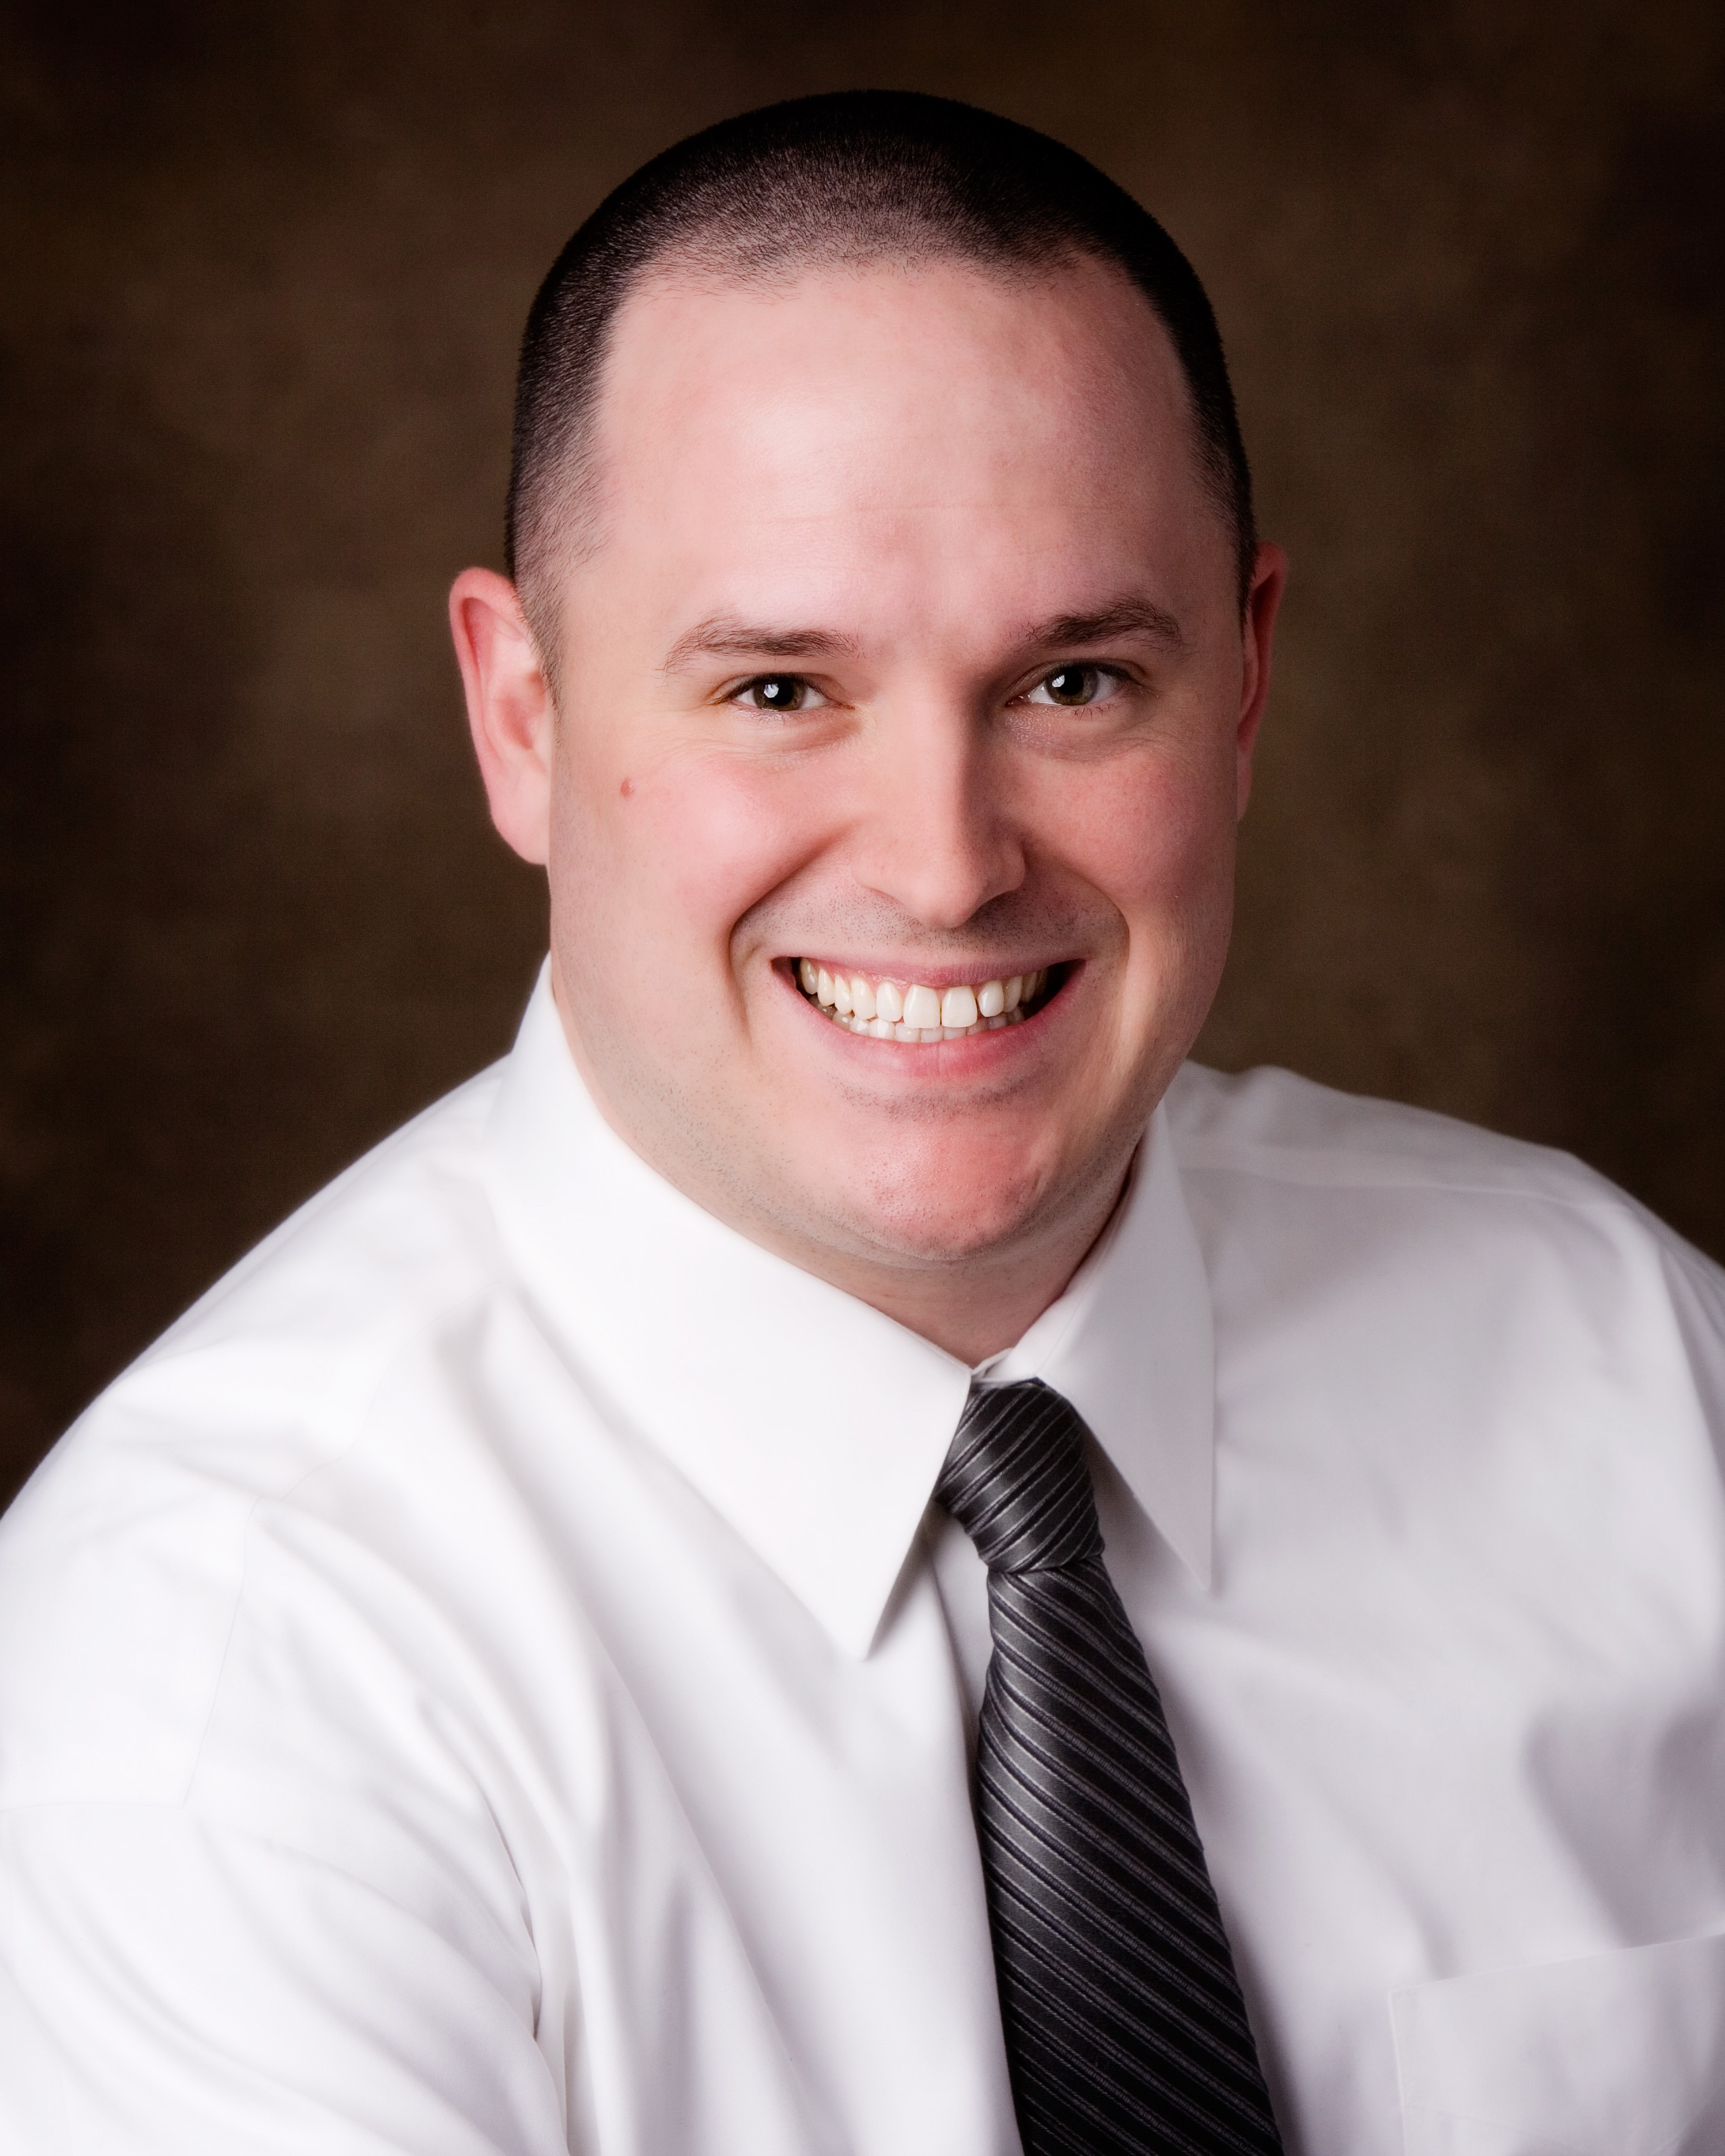 James A Reed, DDS, MSD